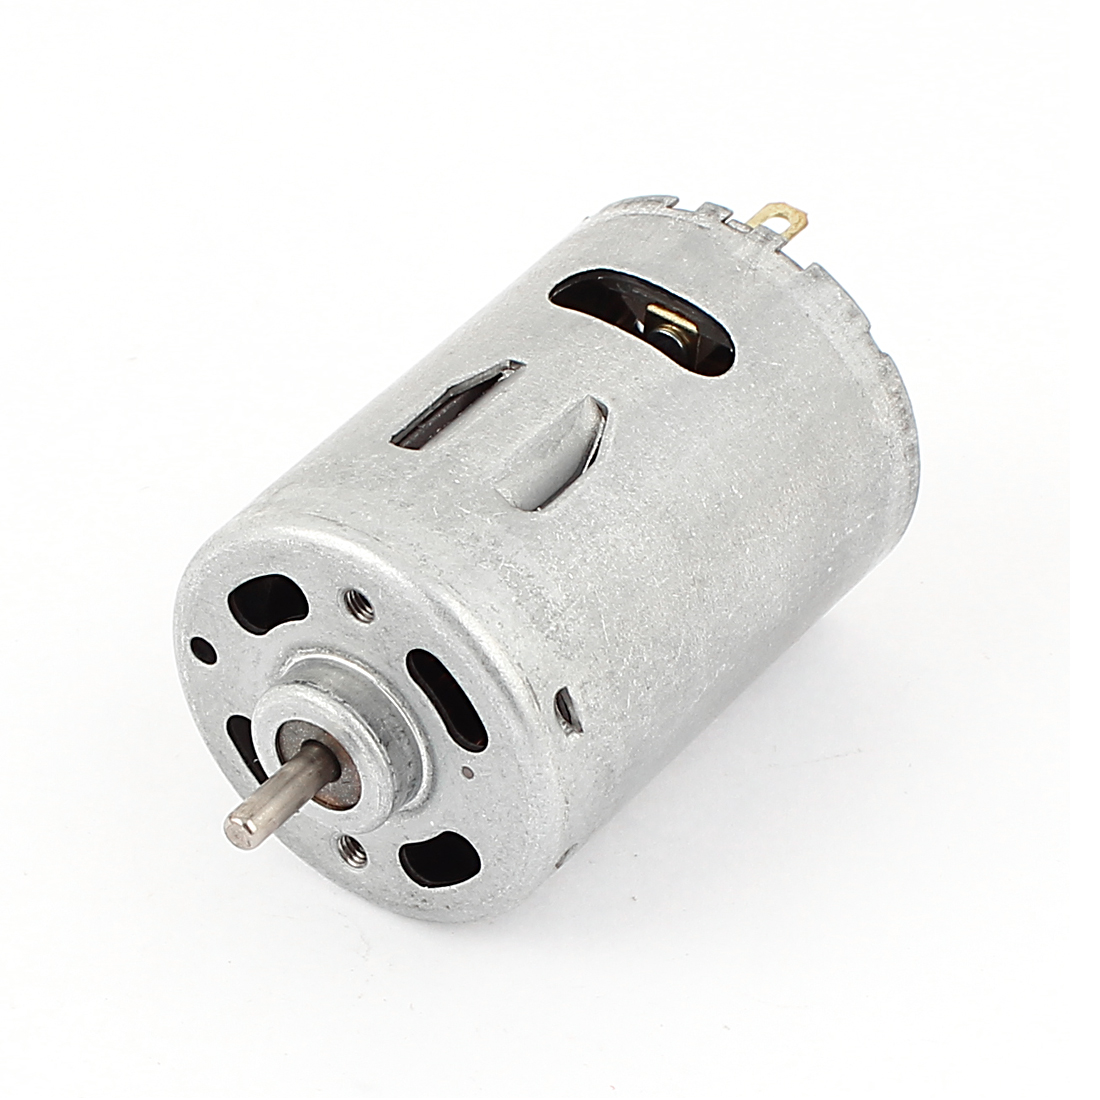 DC 12V 15000RPM Cylindrical Miniature Electric Screwdriver Magnetic Motor R540